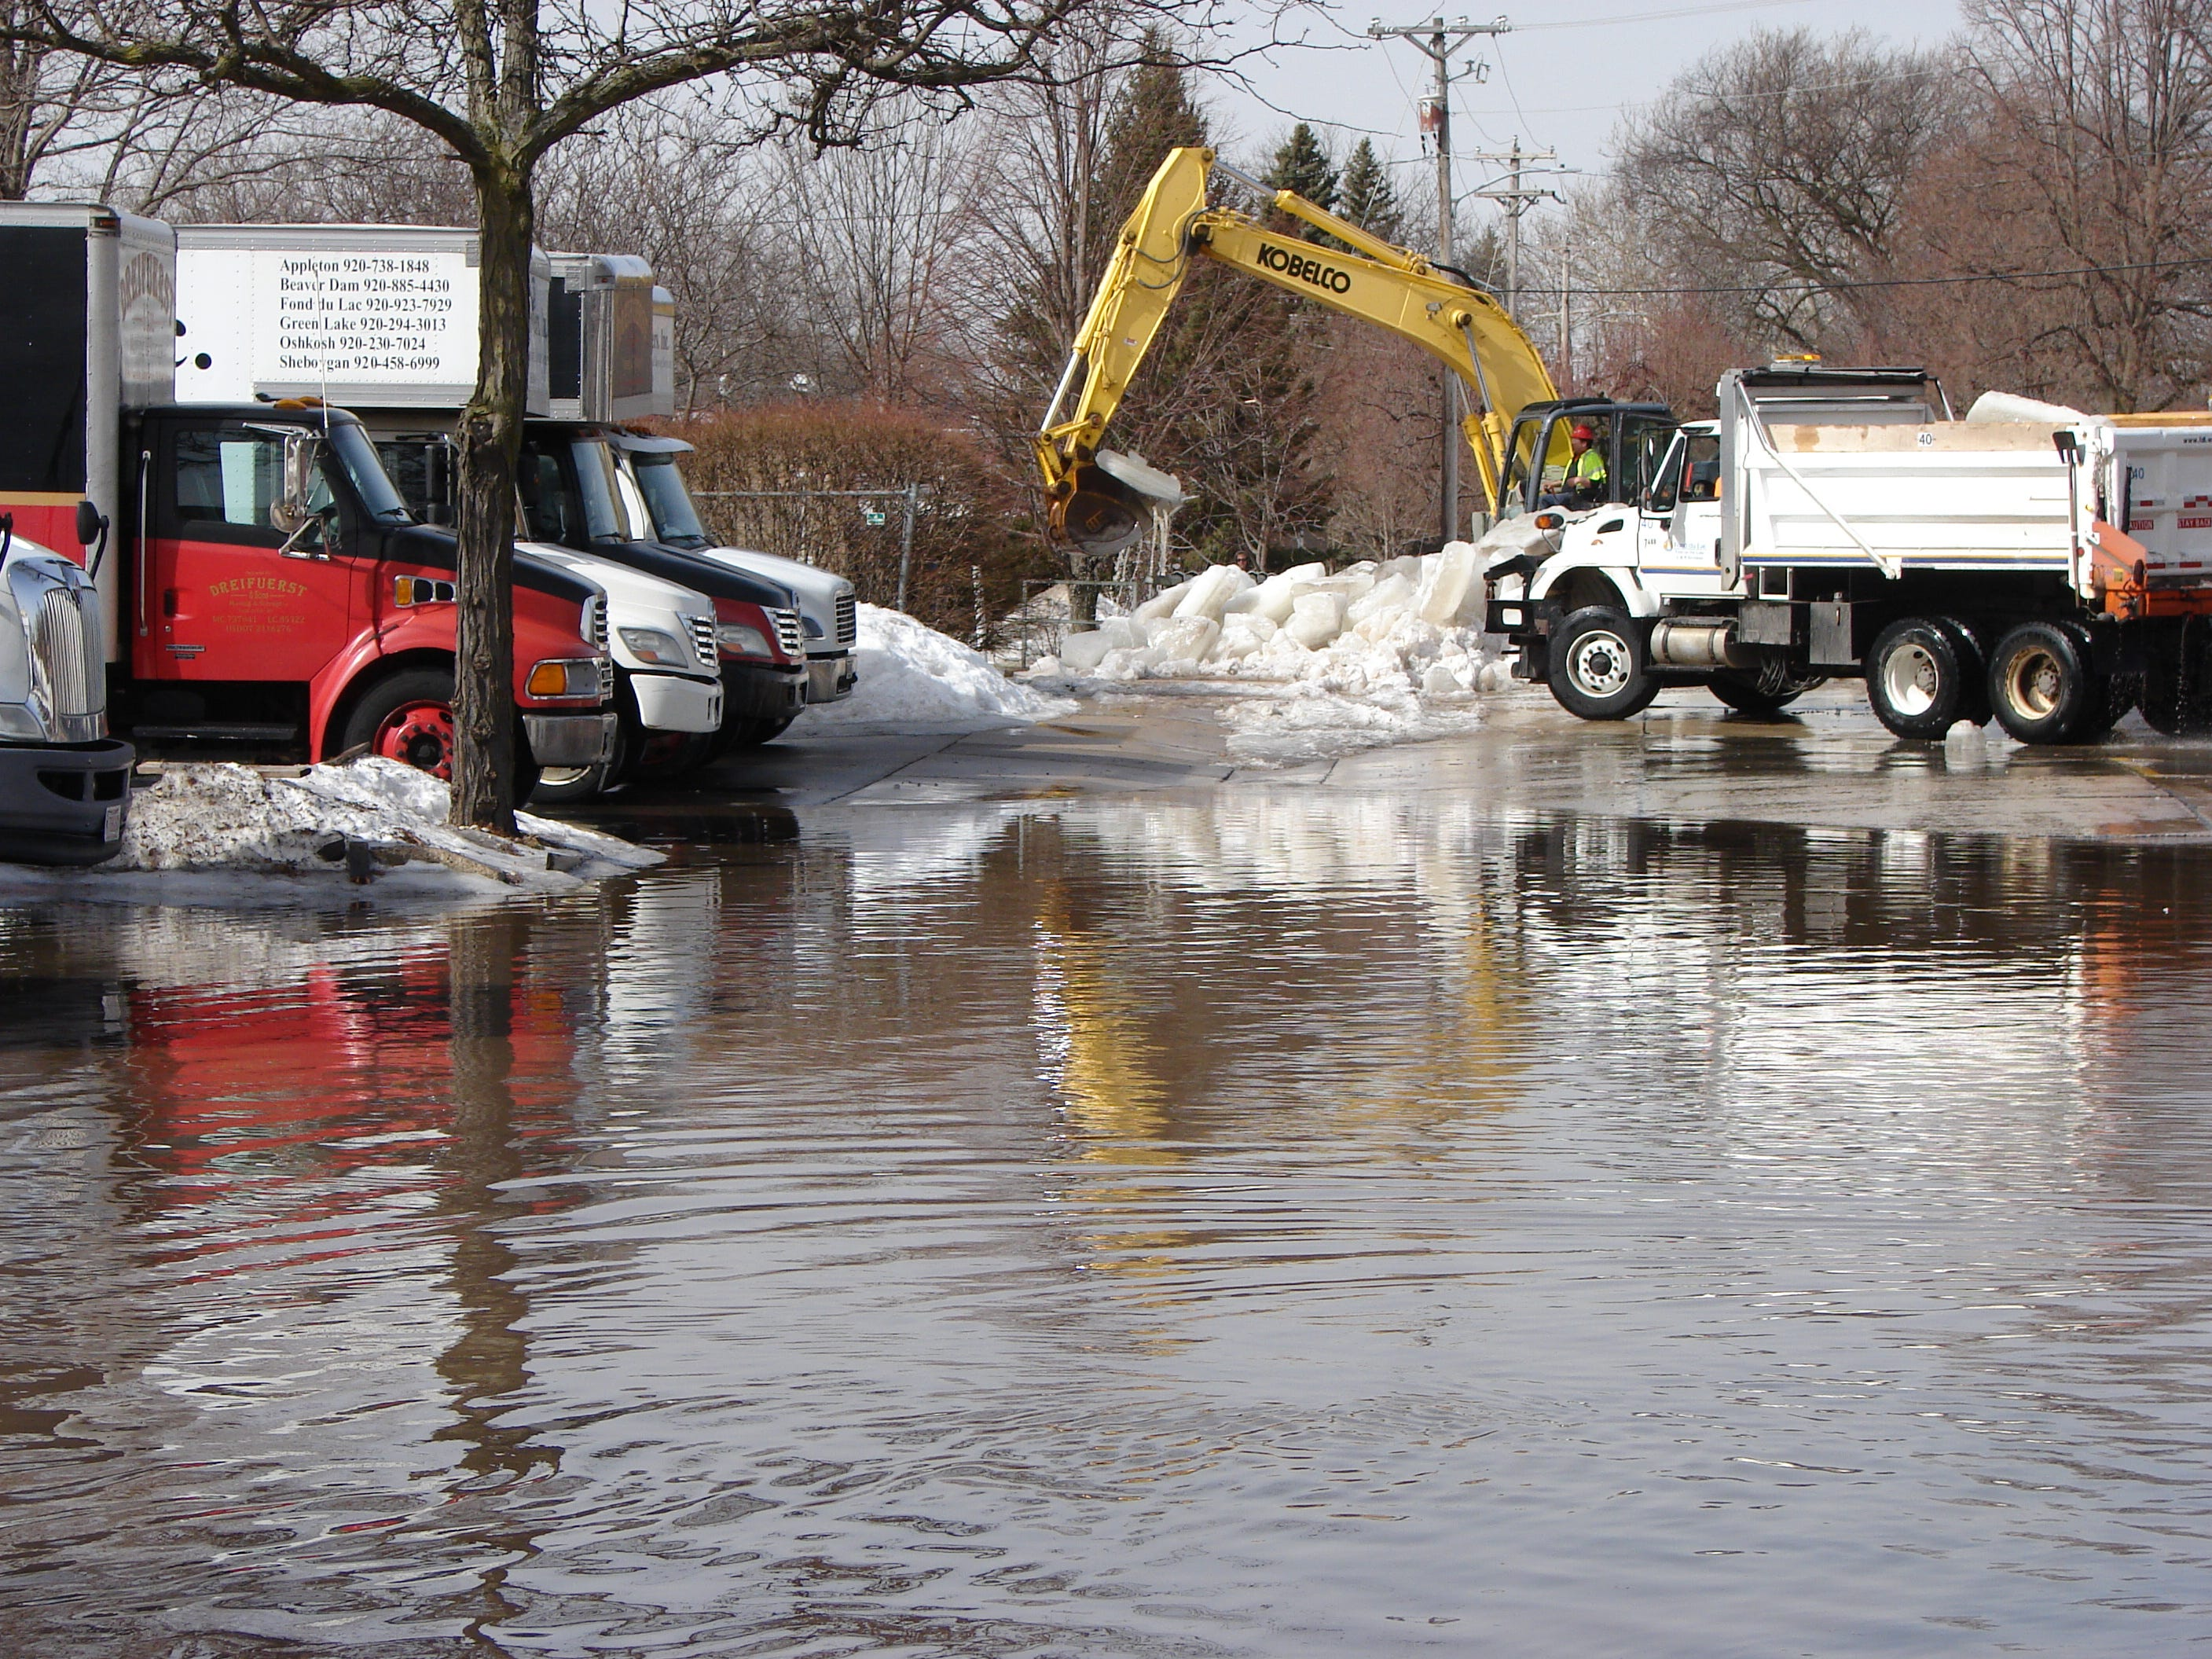 Parts of West First Street were flooded Thursday morning as crews removed an ice jam from the Fond du Lac River.